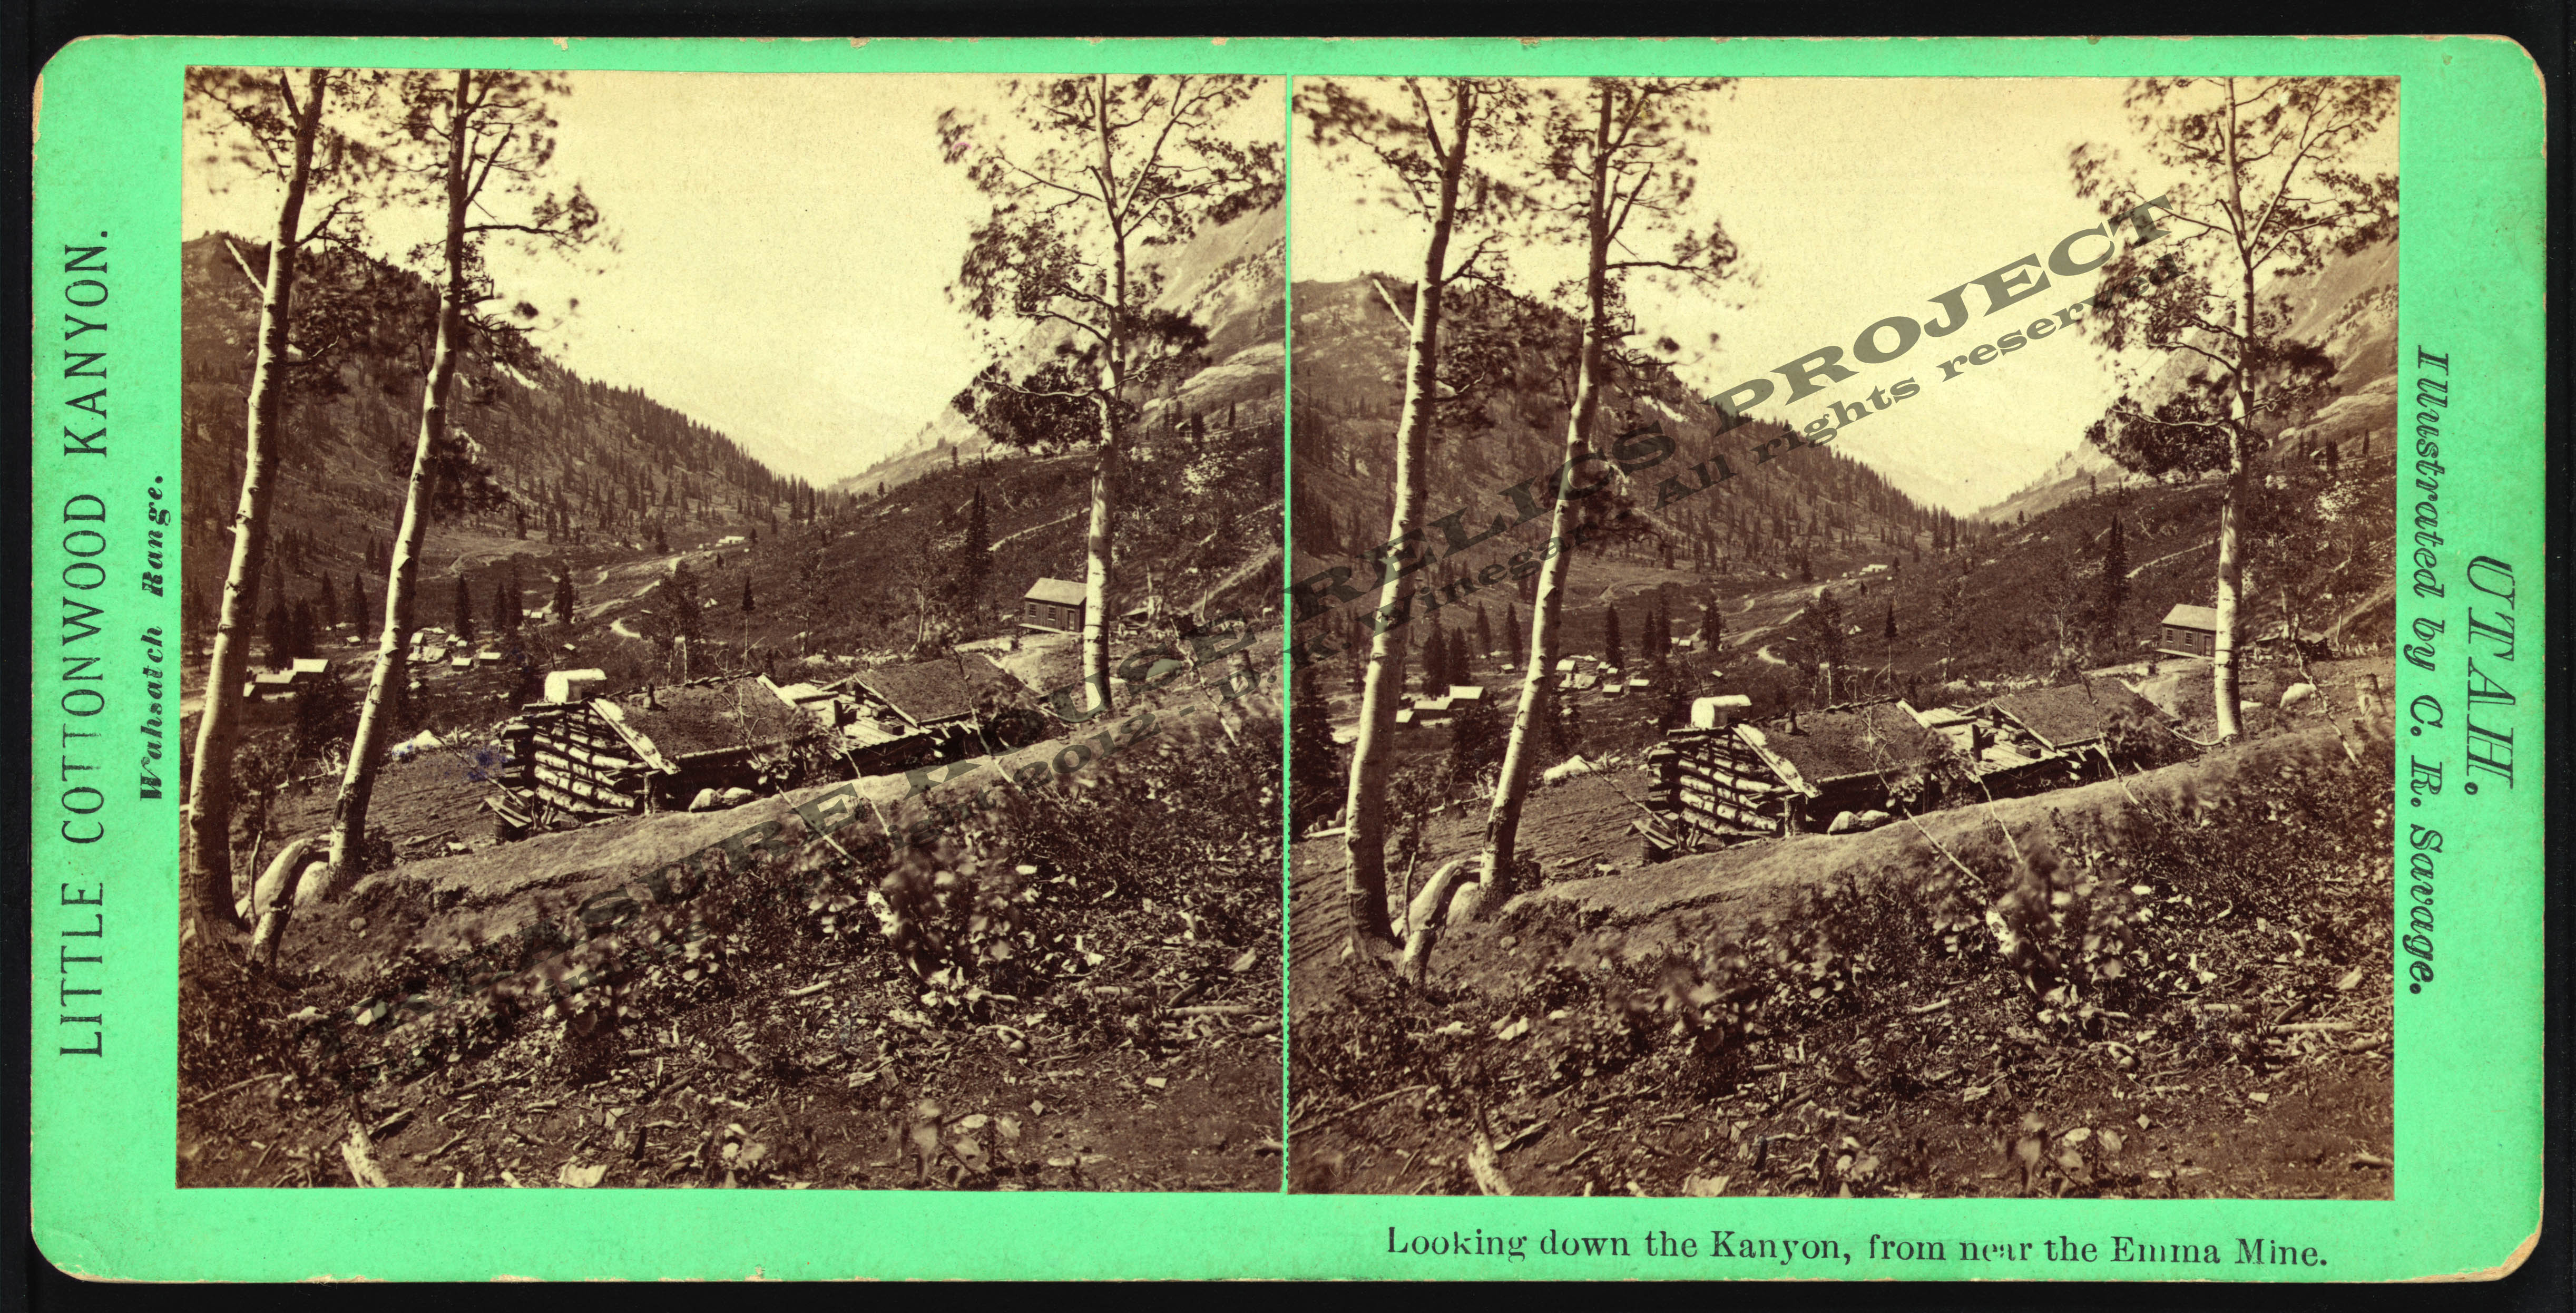 STEREOVIEW_-_LOOKING_DOWN_THE_CANYON_FROM_NEAR_THE_EMMA_MINE_-_A_-_C_R_SAVAGE_emboss.jpg